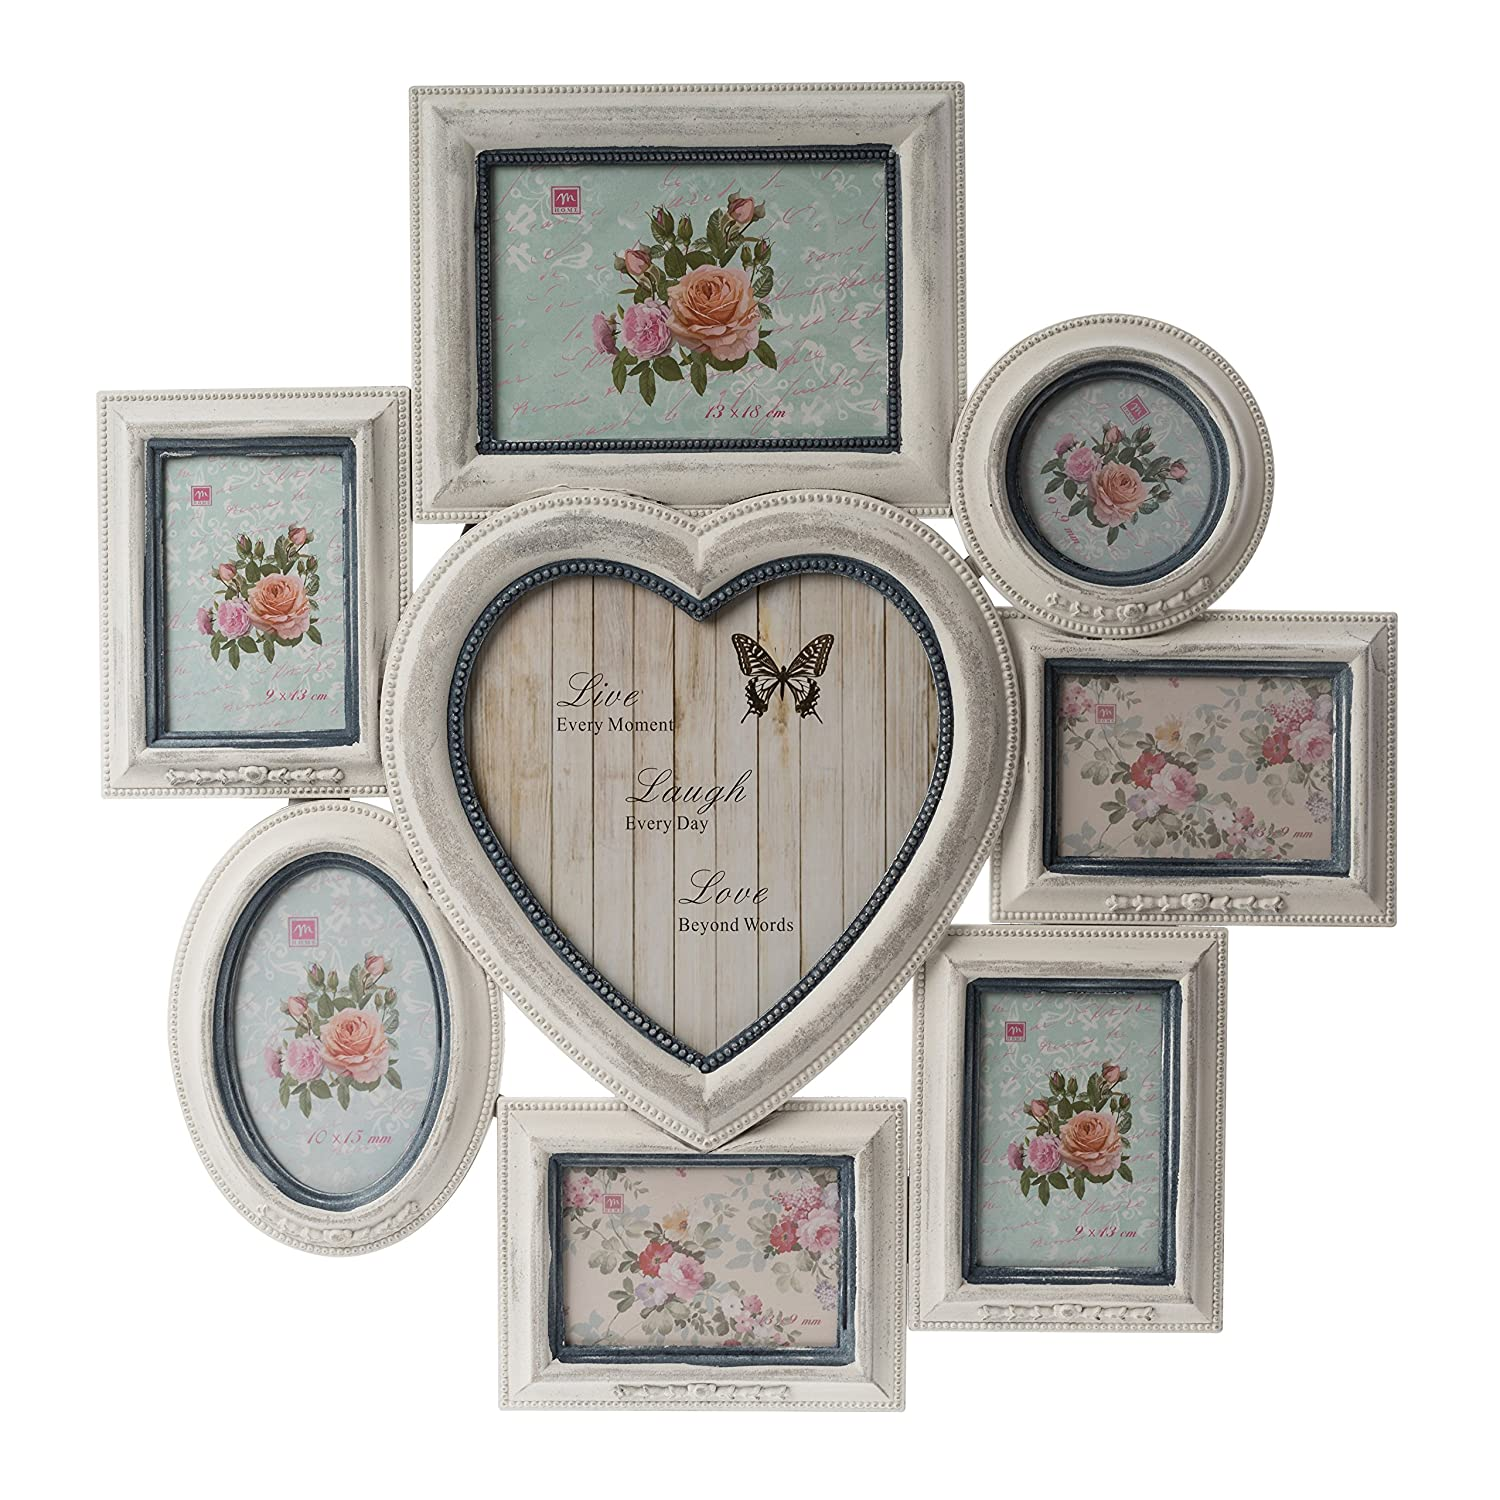 elbmoebel Wooden 2-7 photo frame hanging picture in shabby chic ...